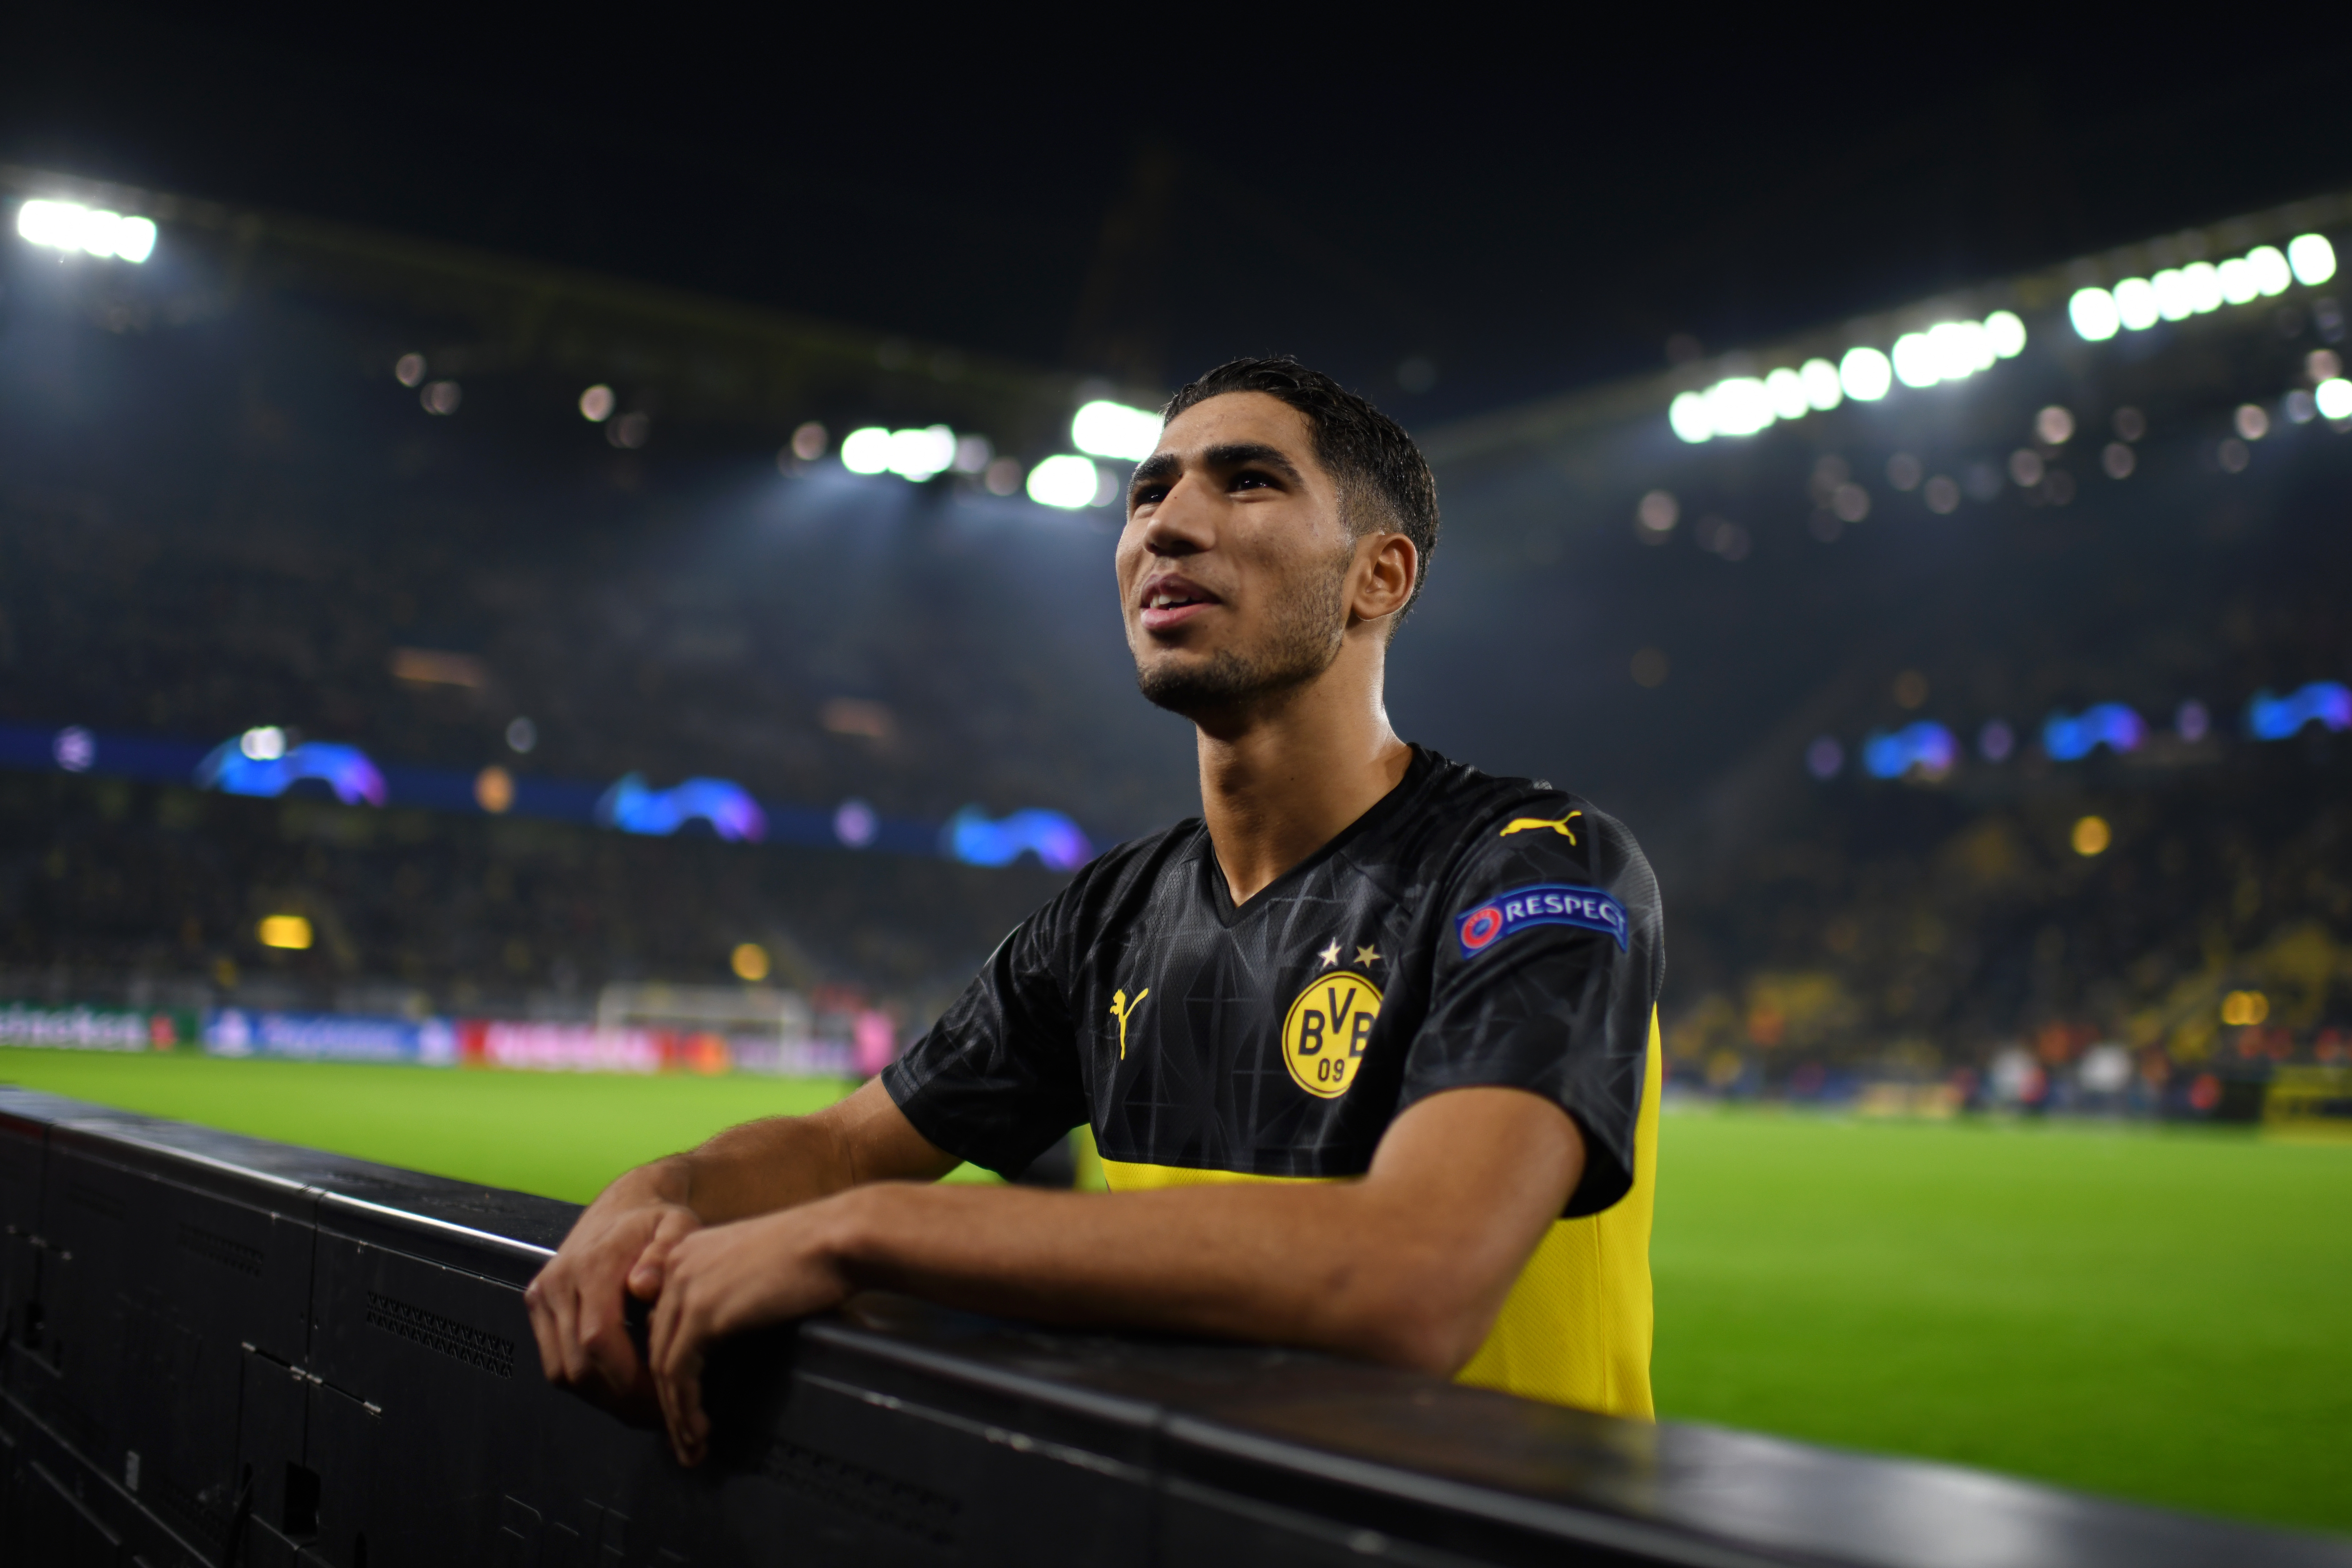 Hakimi will be playing his last game for Dortmund (Photo by Jörg Schüler/Getty Images)